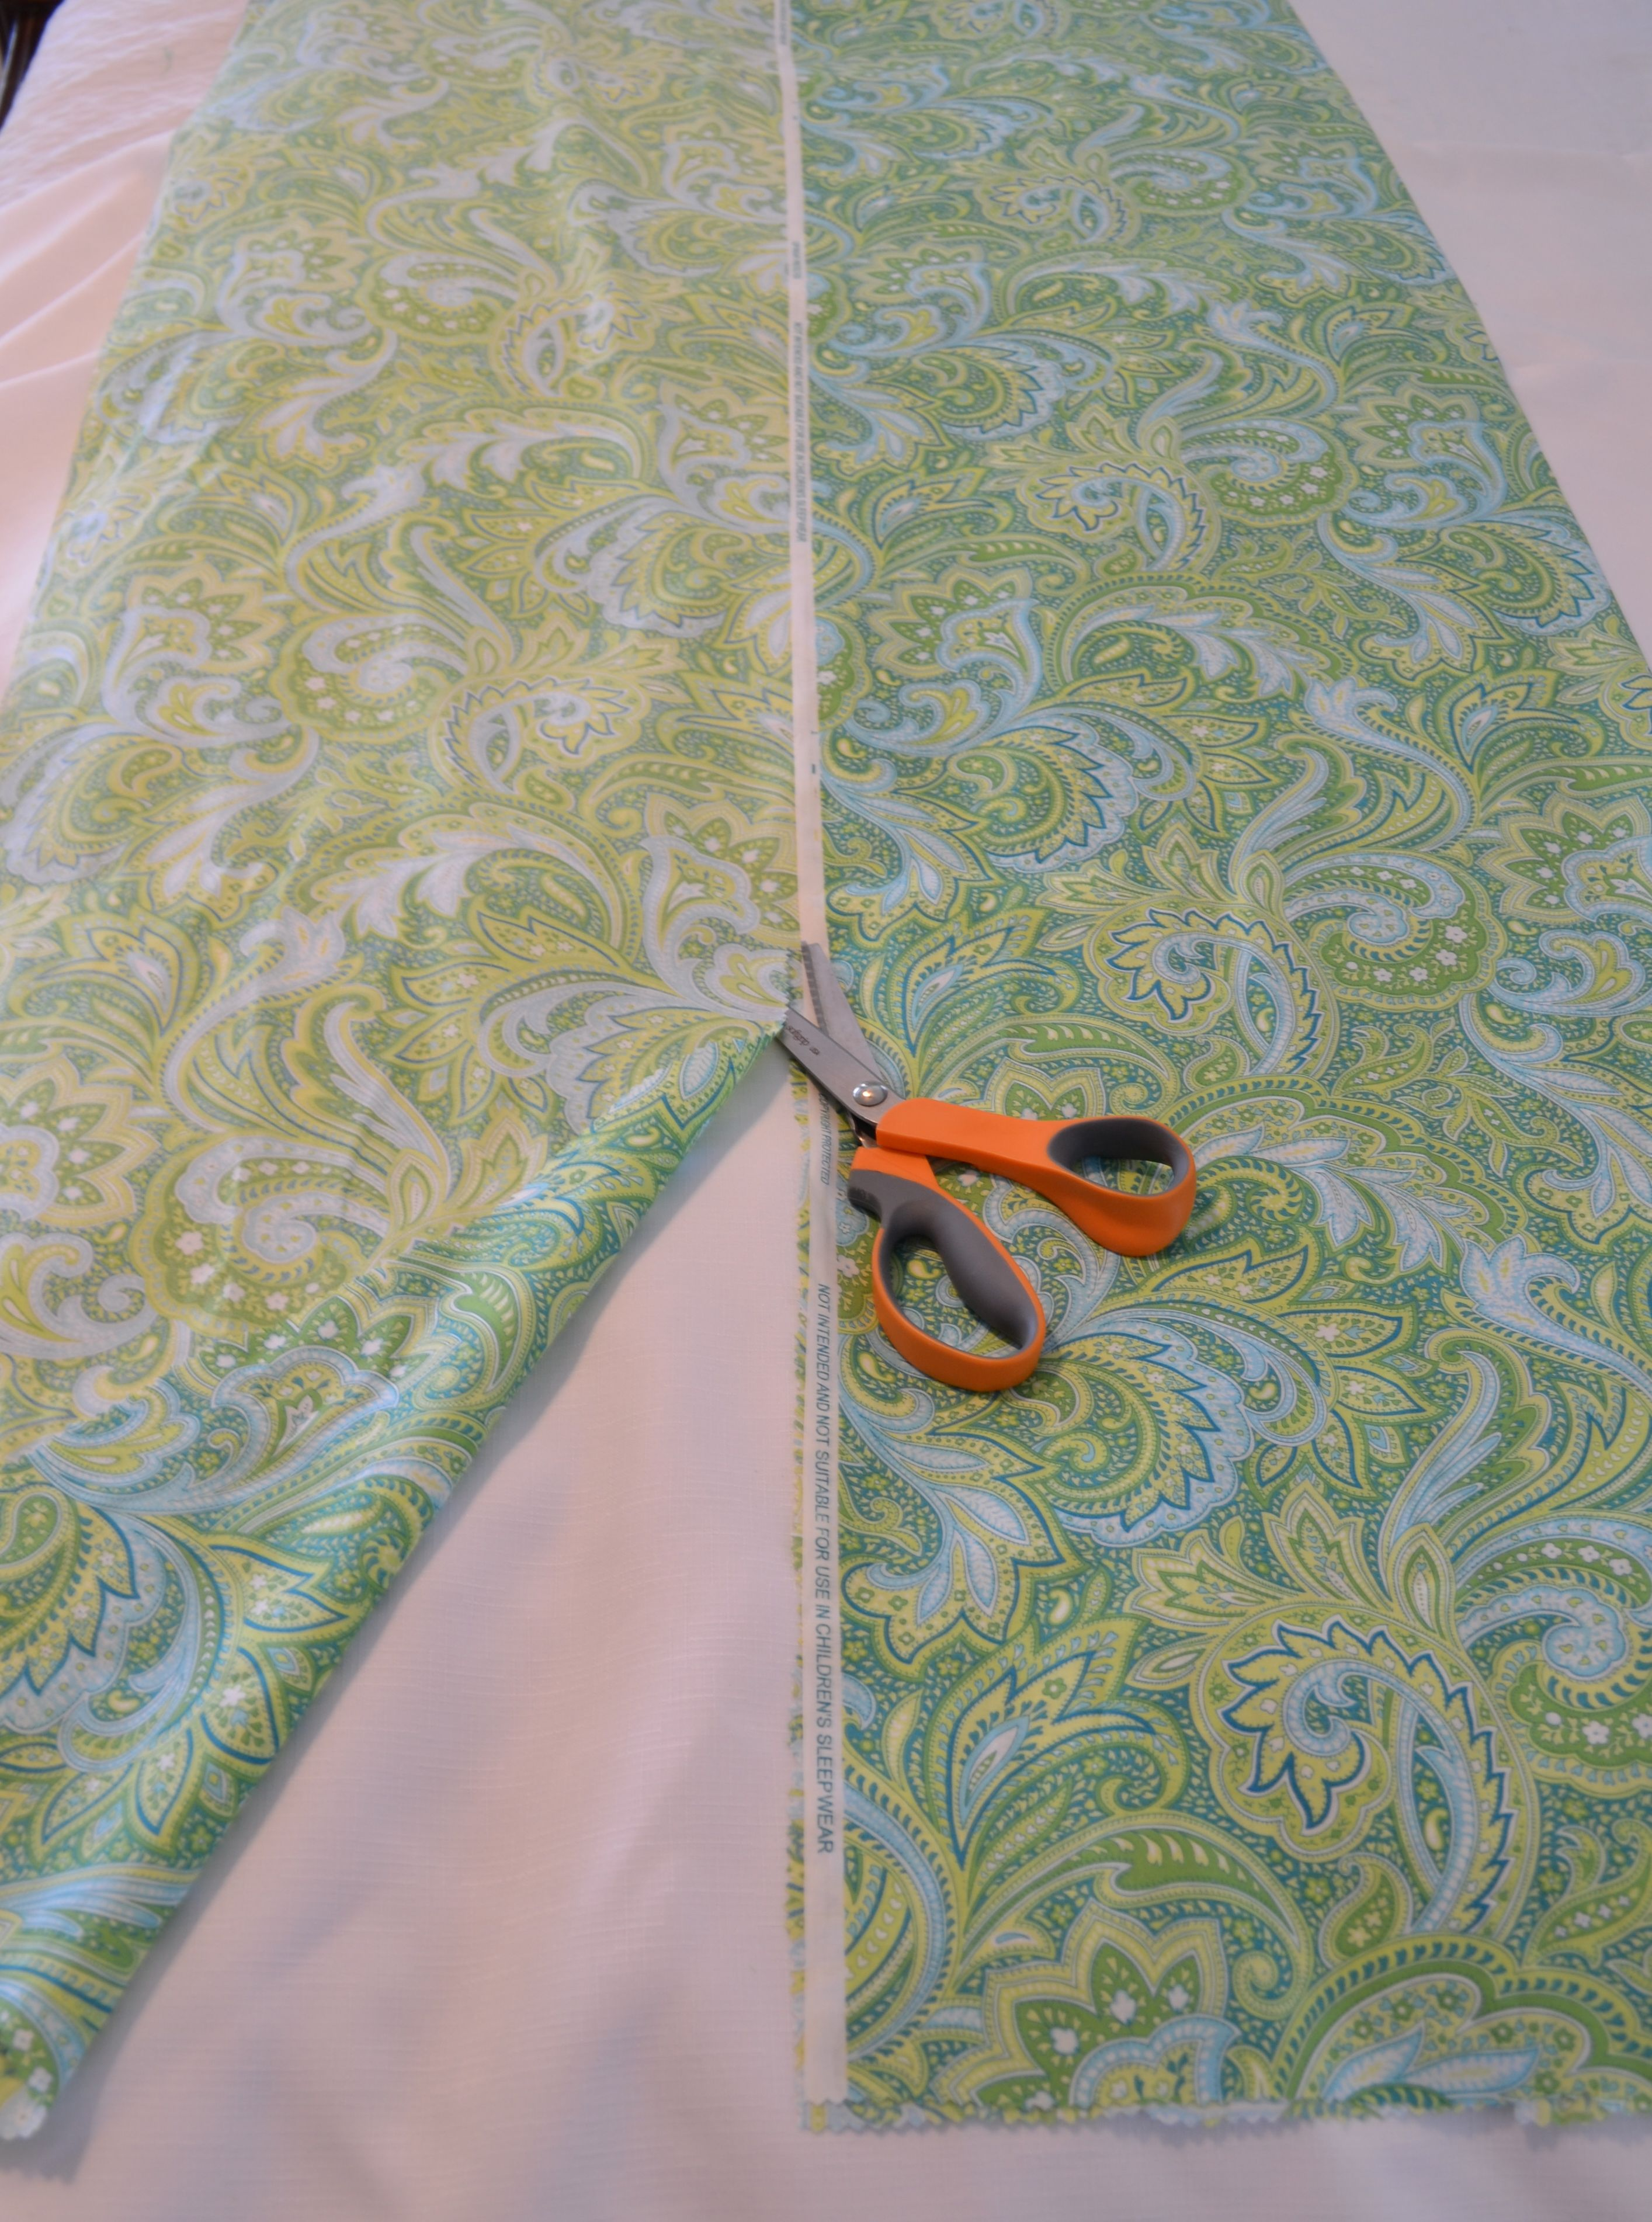 How To Make A Fabric Table Runner Easy Diy Home Sewing Project Fabric Table Runner Diy Table Runner Wedding Table Runner Diy